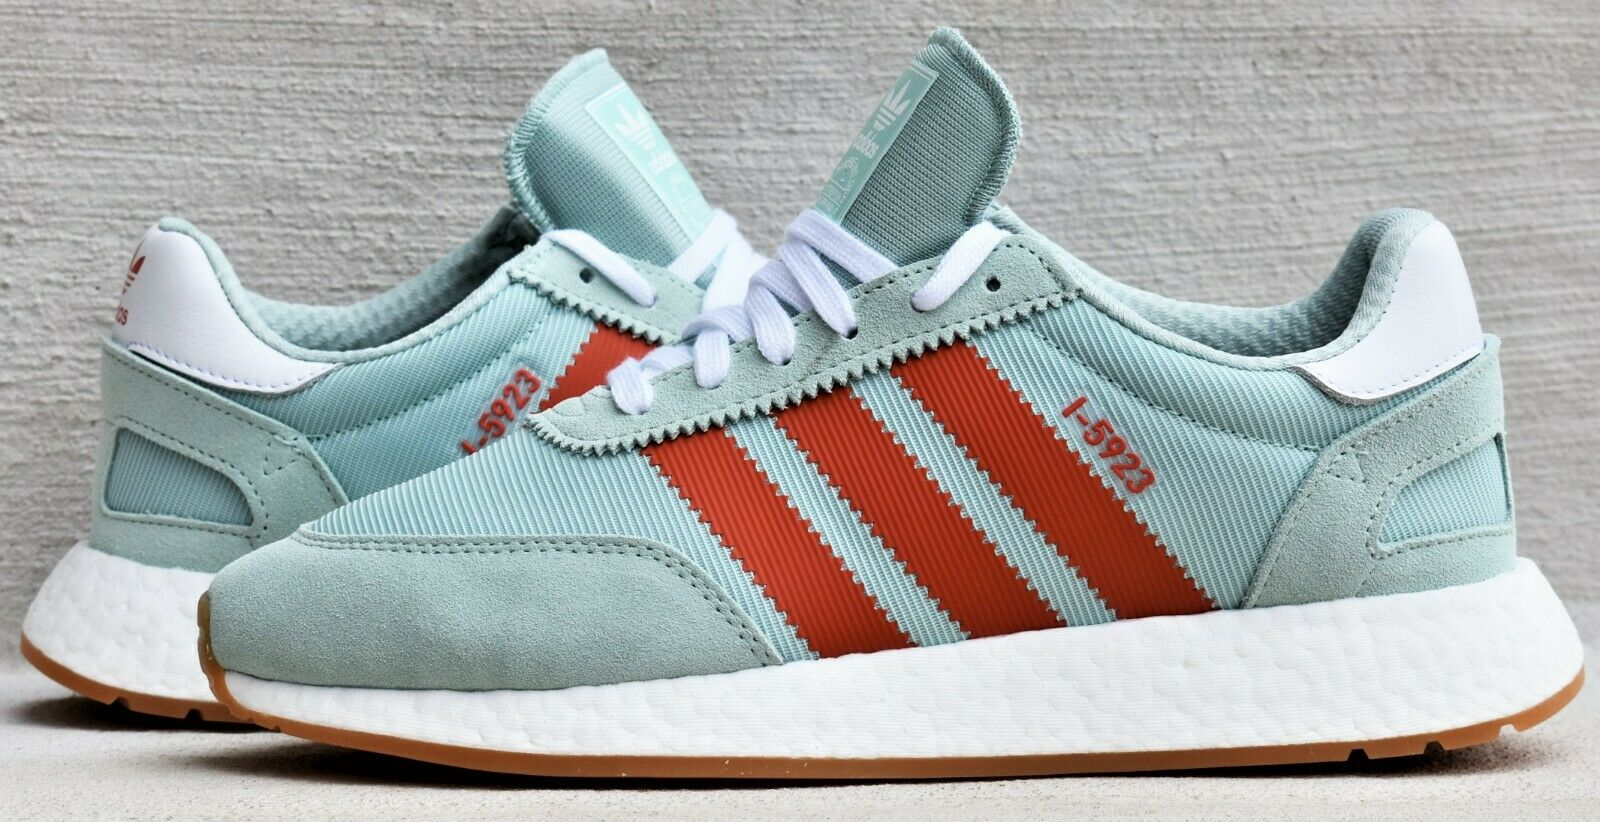 afa2742b5 New Adidas Originals Iniki Men s Boost shoes Ash Green Amber I-5923  Lifestyle nsklpg4377-Athletic Shoes